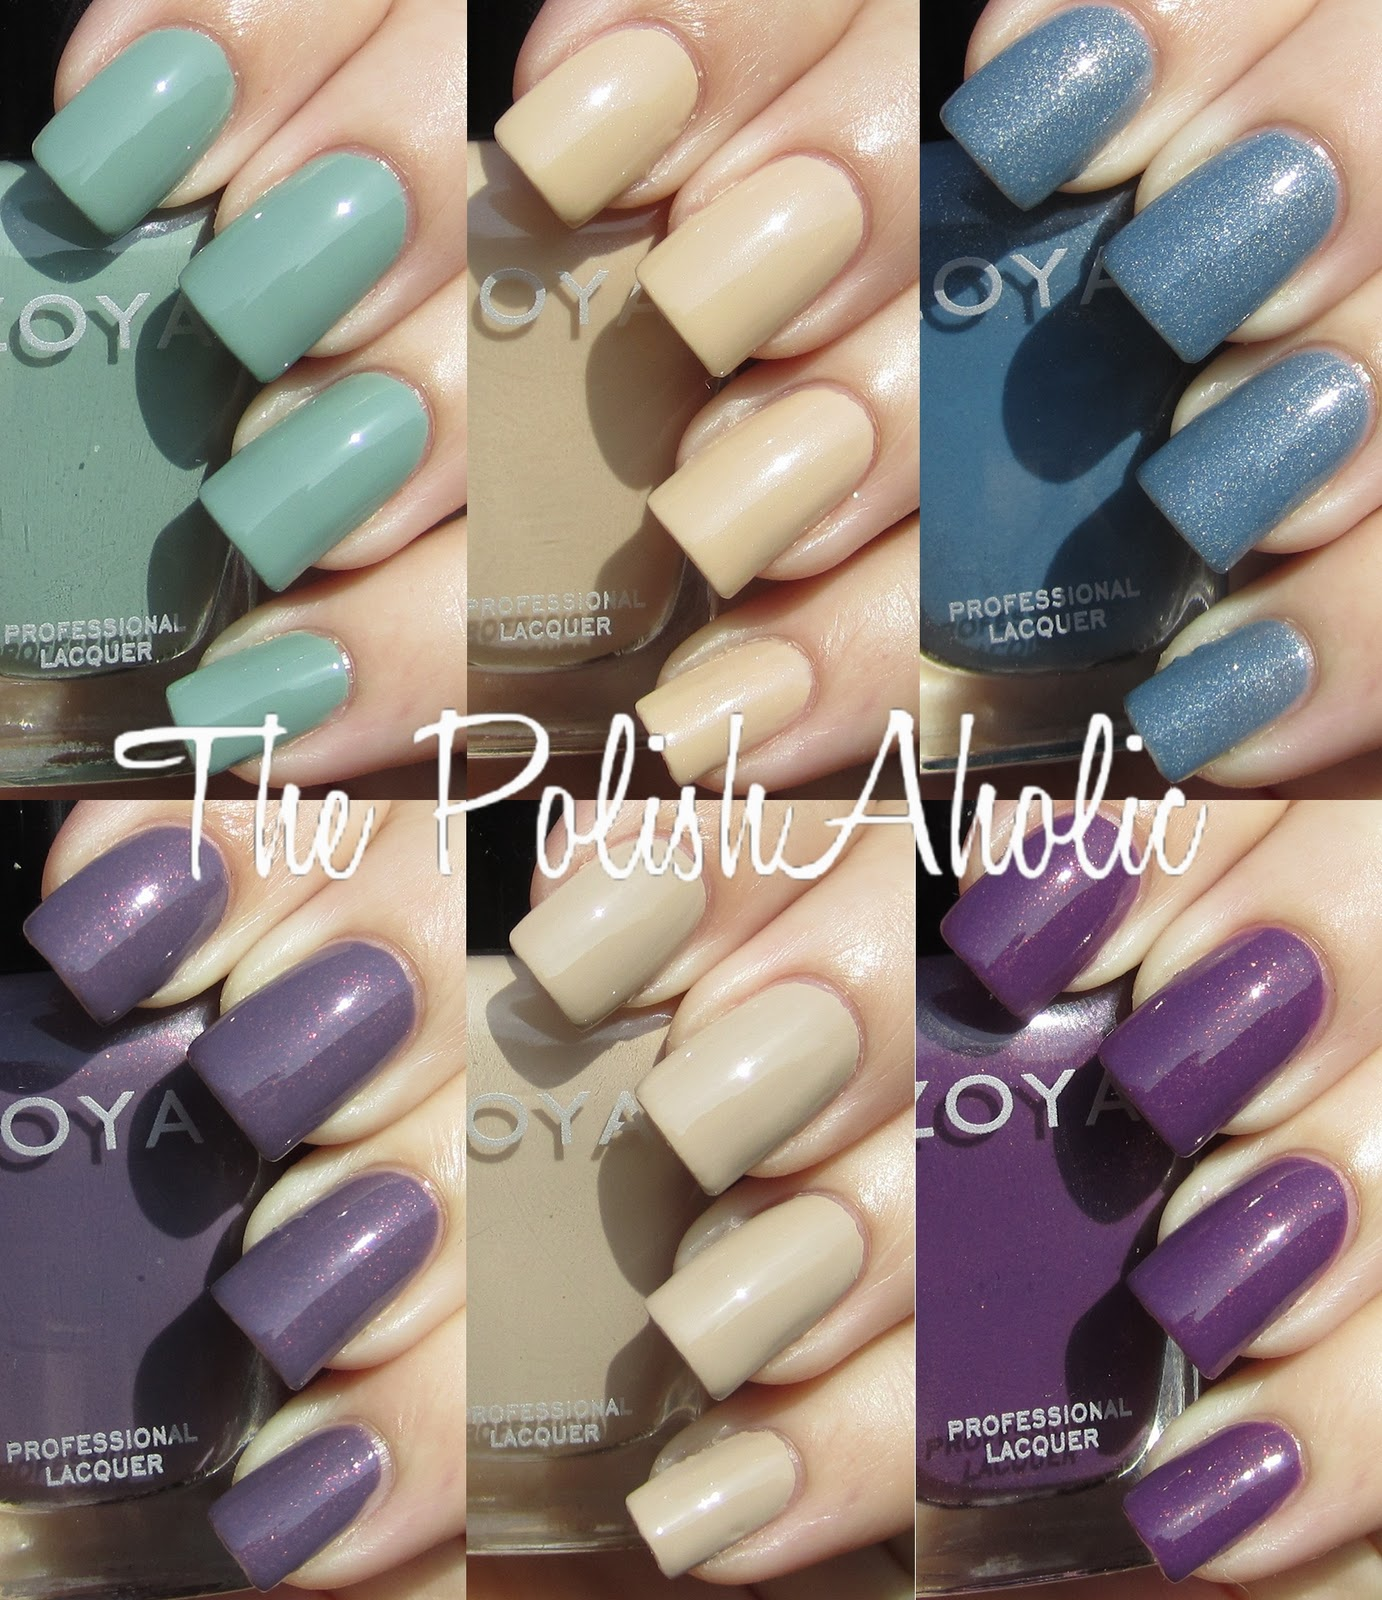 The polishaholic zoya spring 2012 true collection swatches zoya spring 2012 true collection swatches reheart Gallery